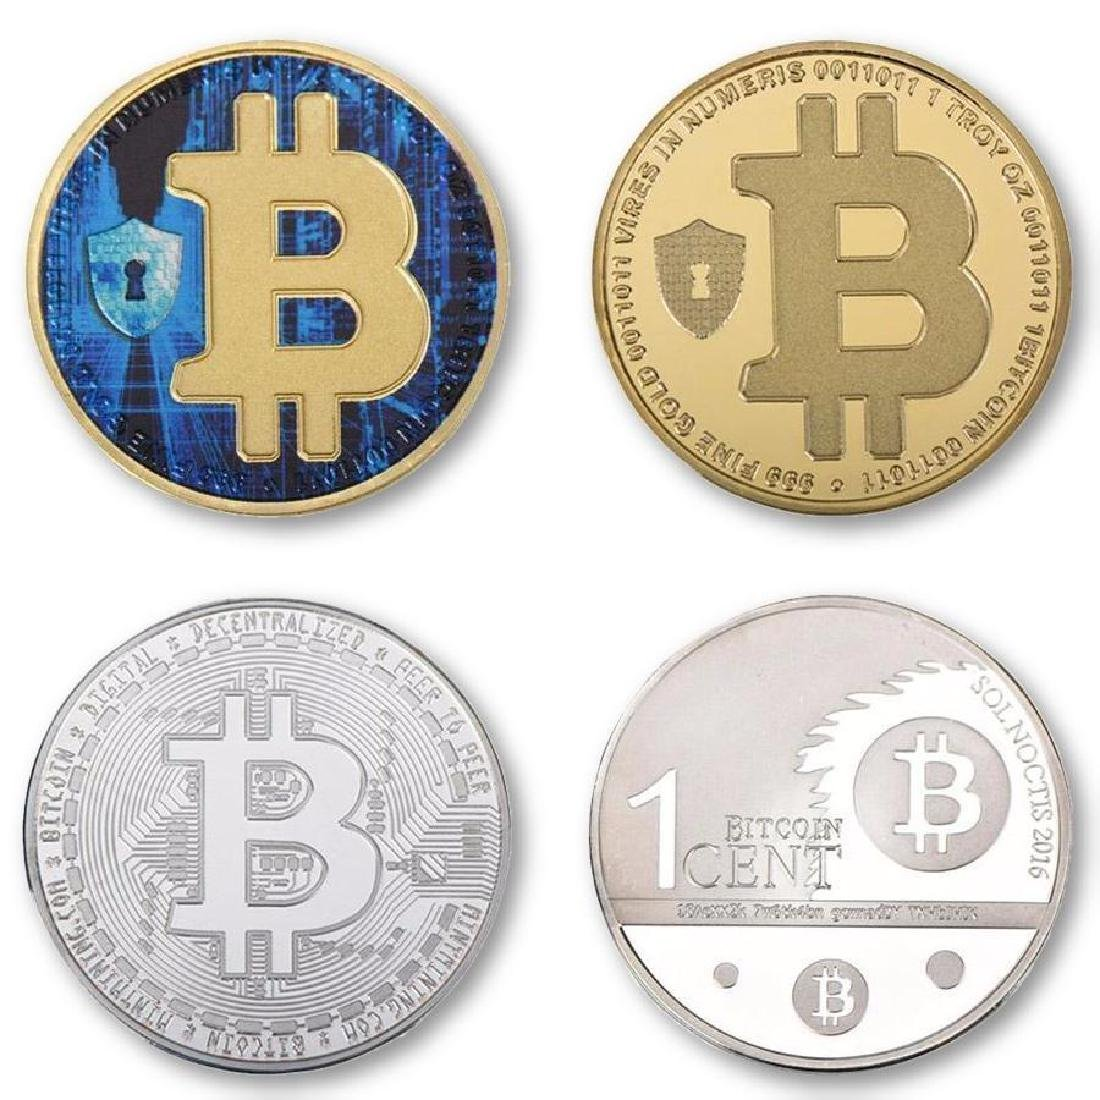 4 Bitcoin Silver and Gold Clad Collectible Coins